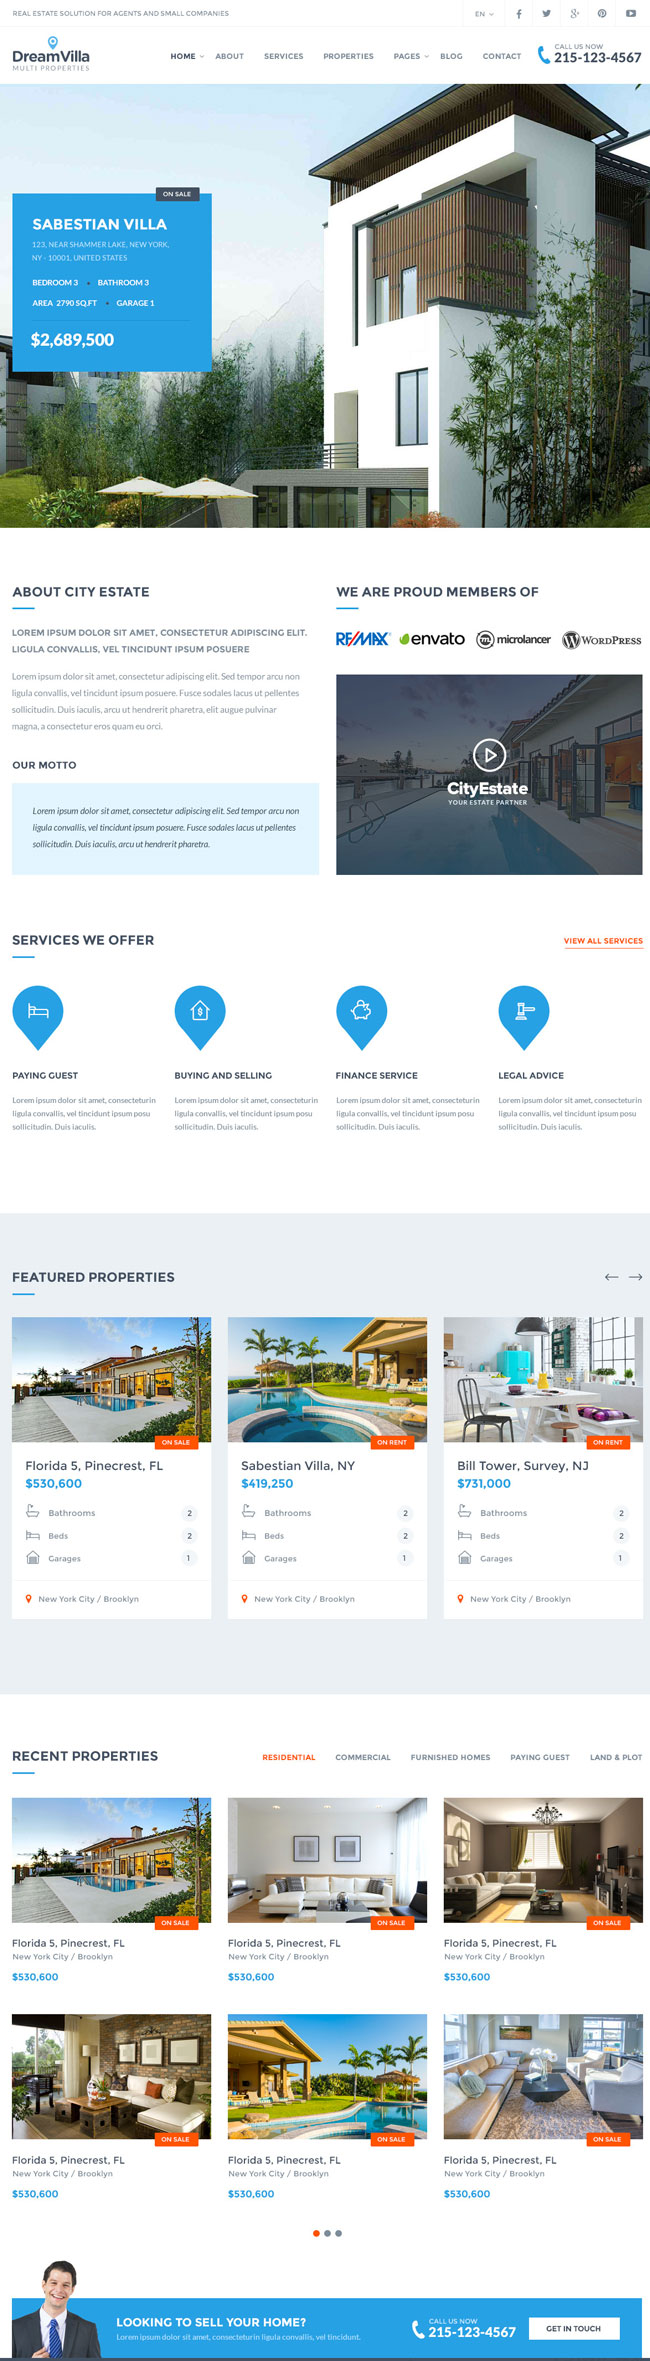 DreamVilla-Real-Estate-HTML-Template